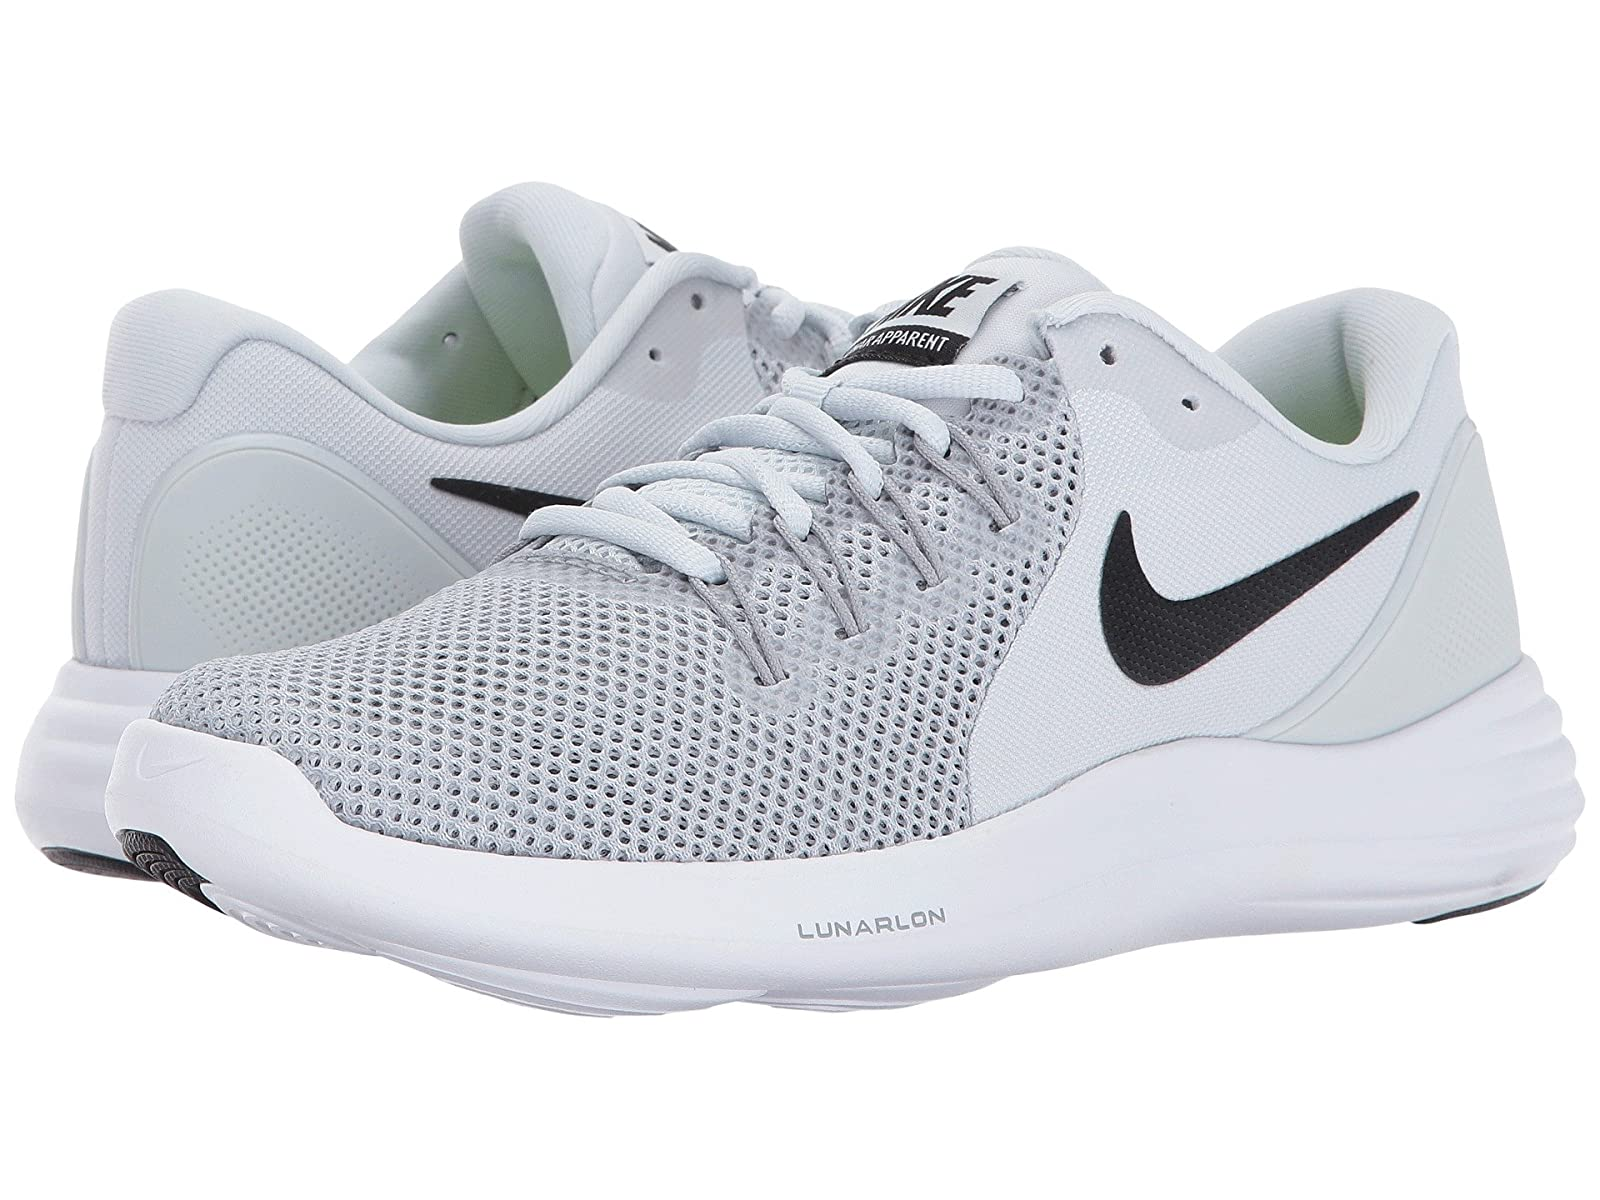 Nike Lunar ApparentCheap and distinctive eye-catching shoes